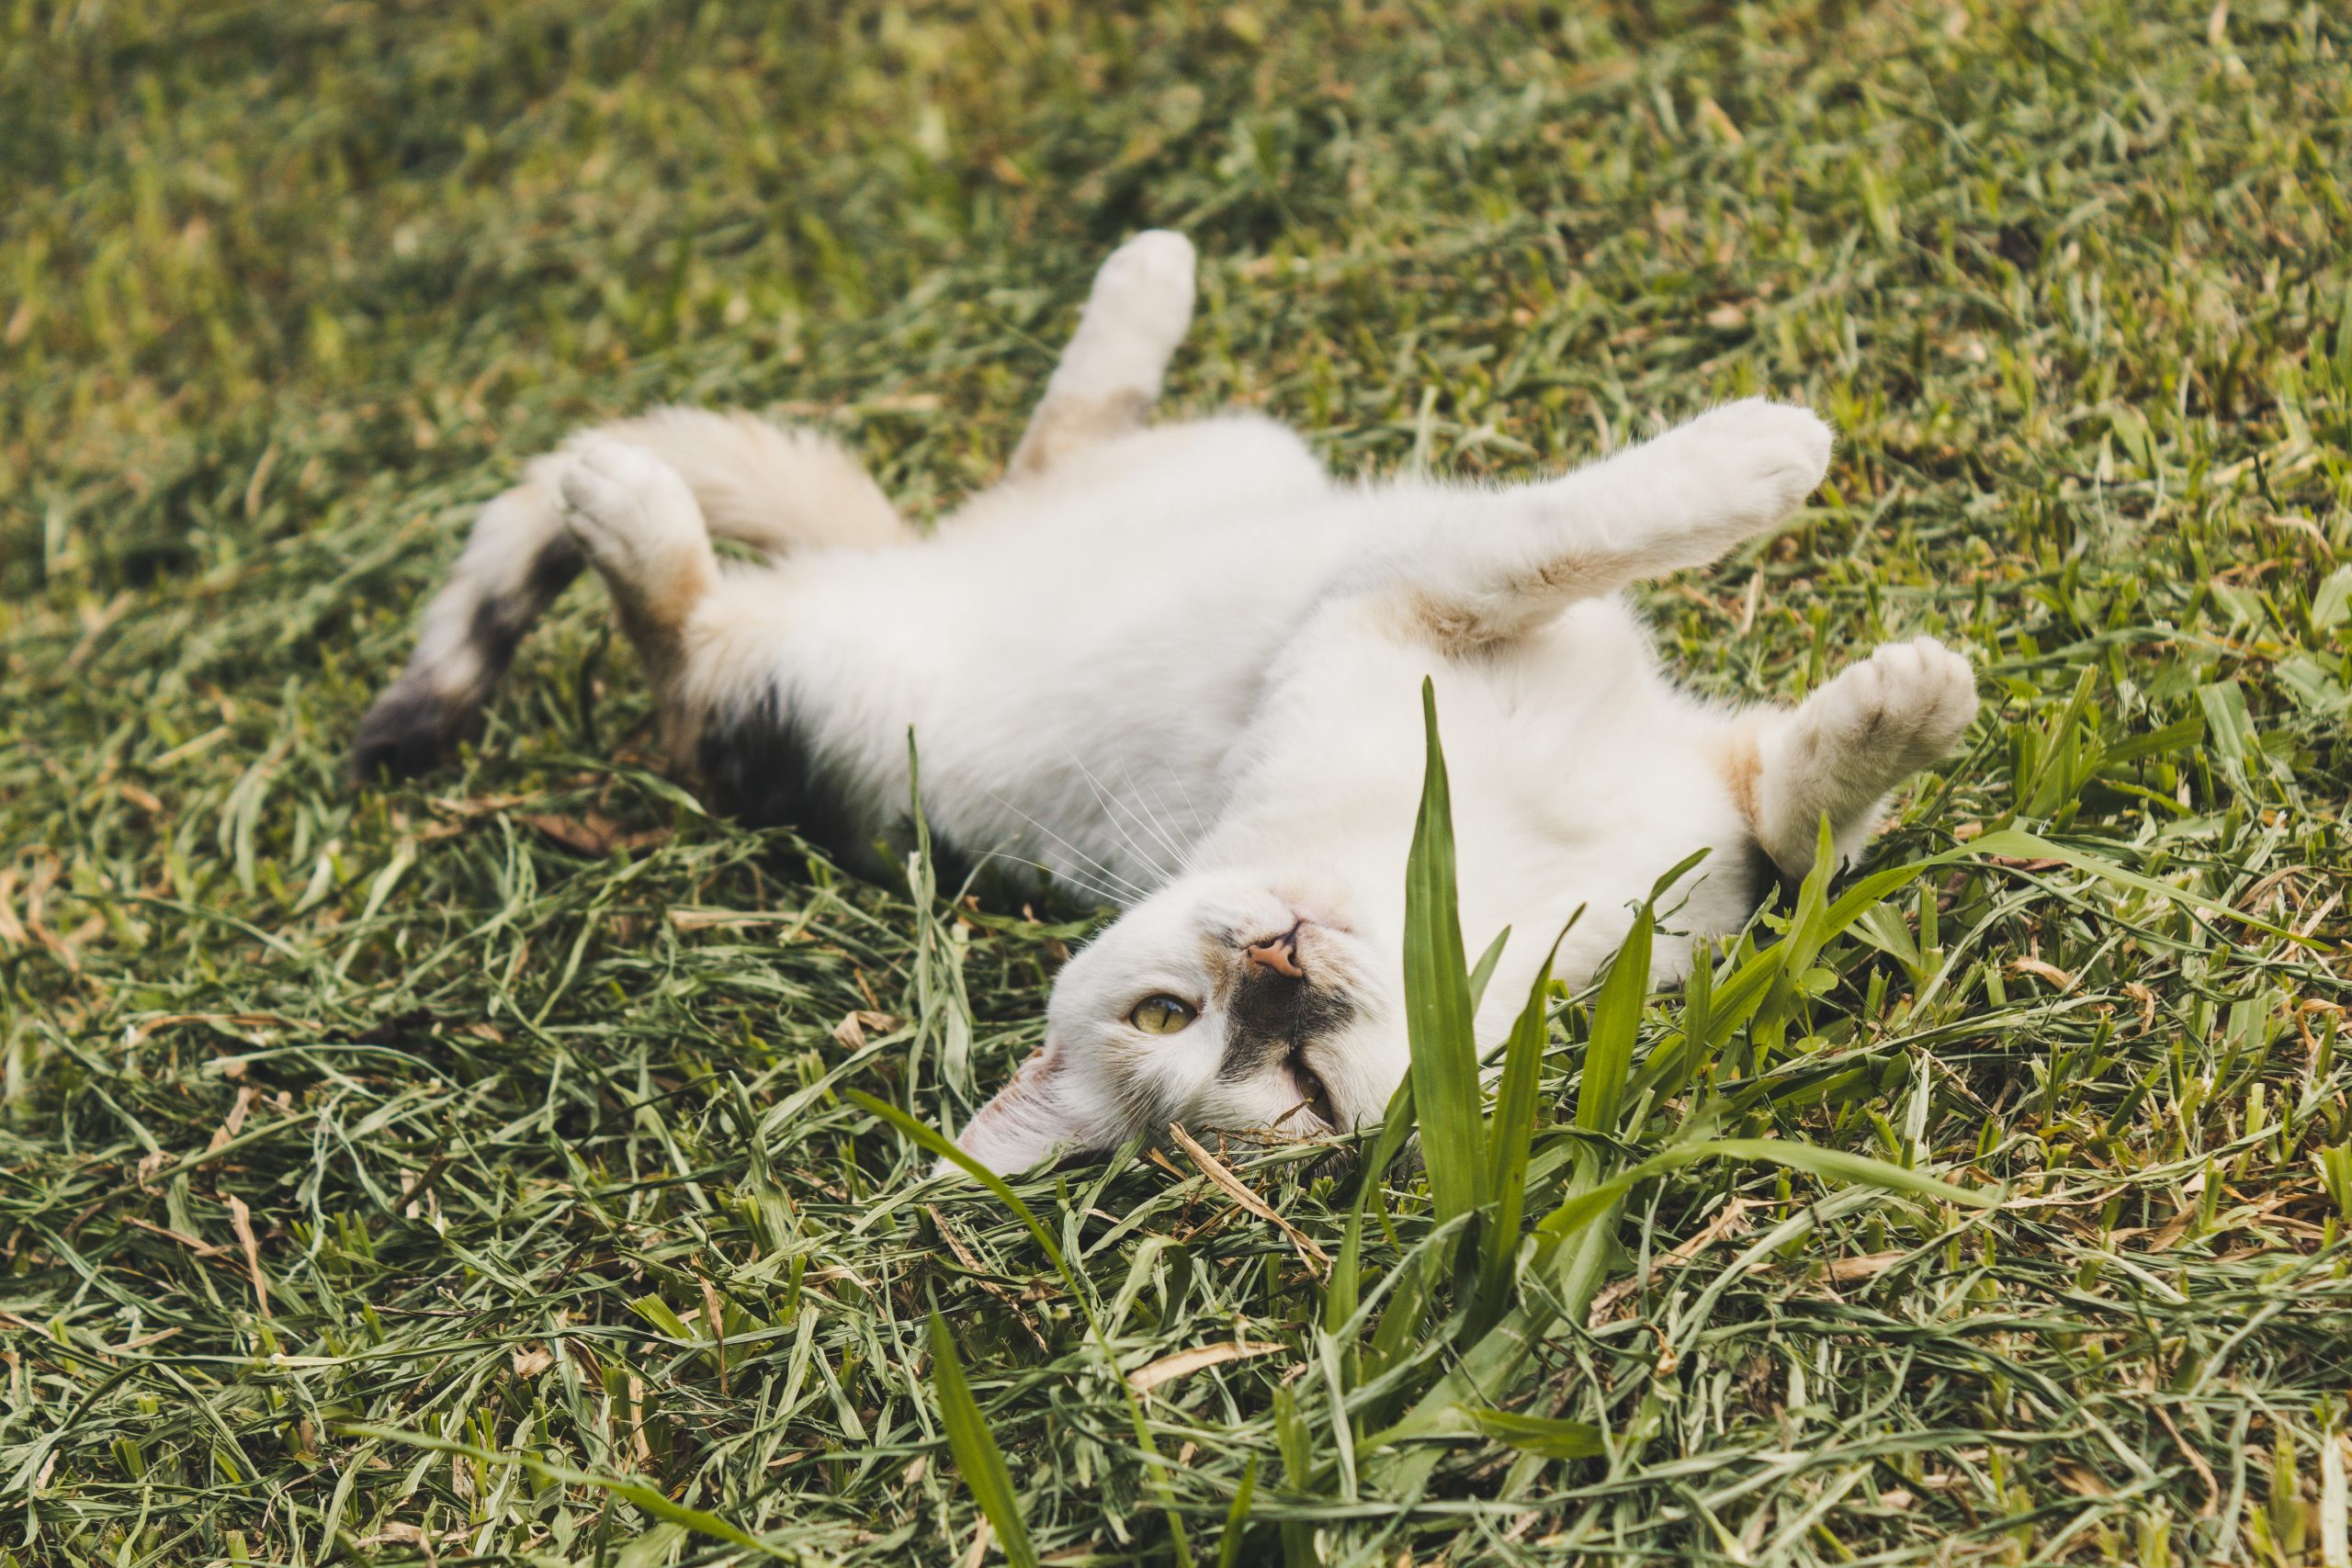 An orange and white cat lays on its back in the grass